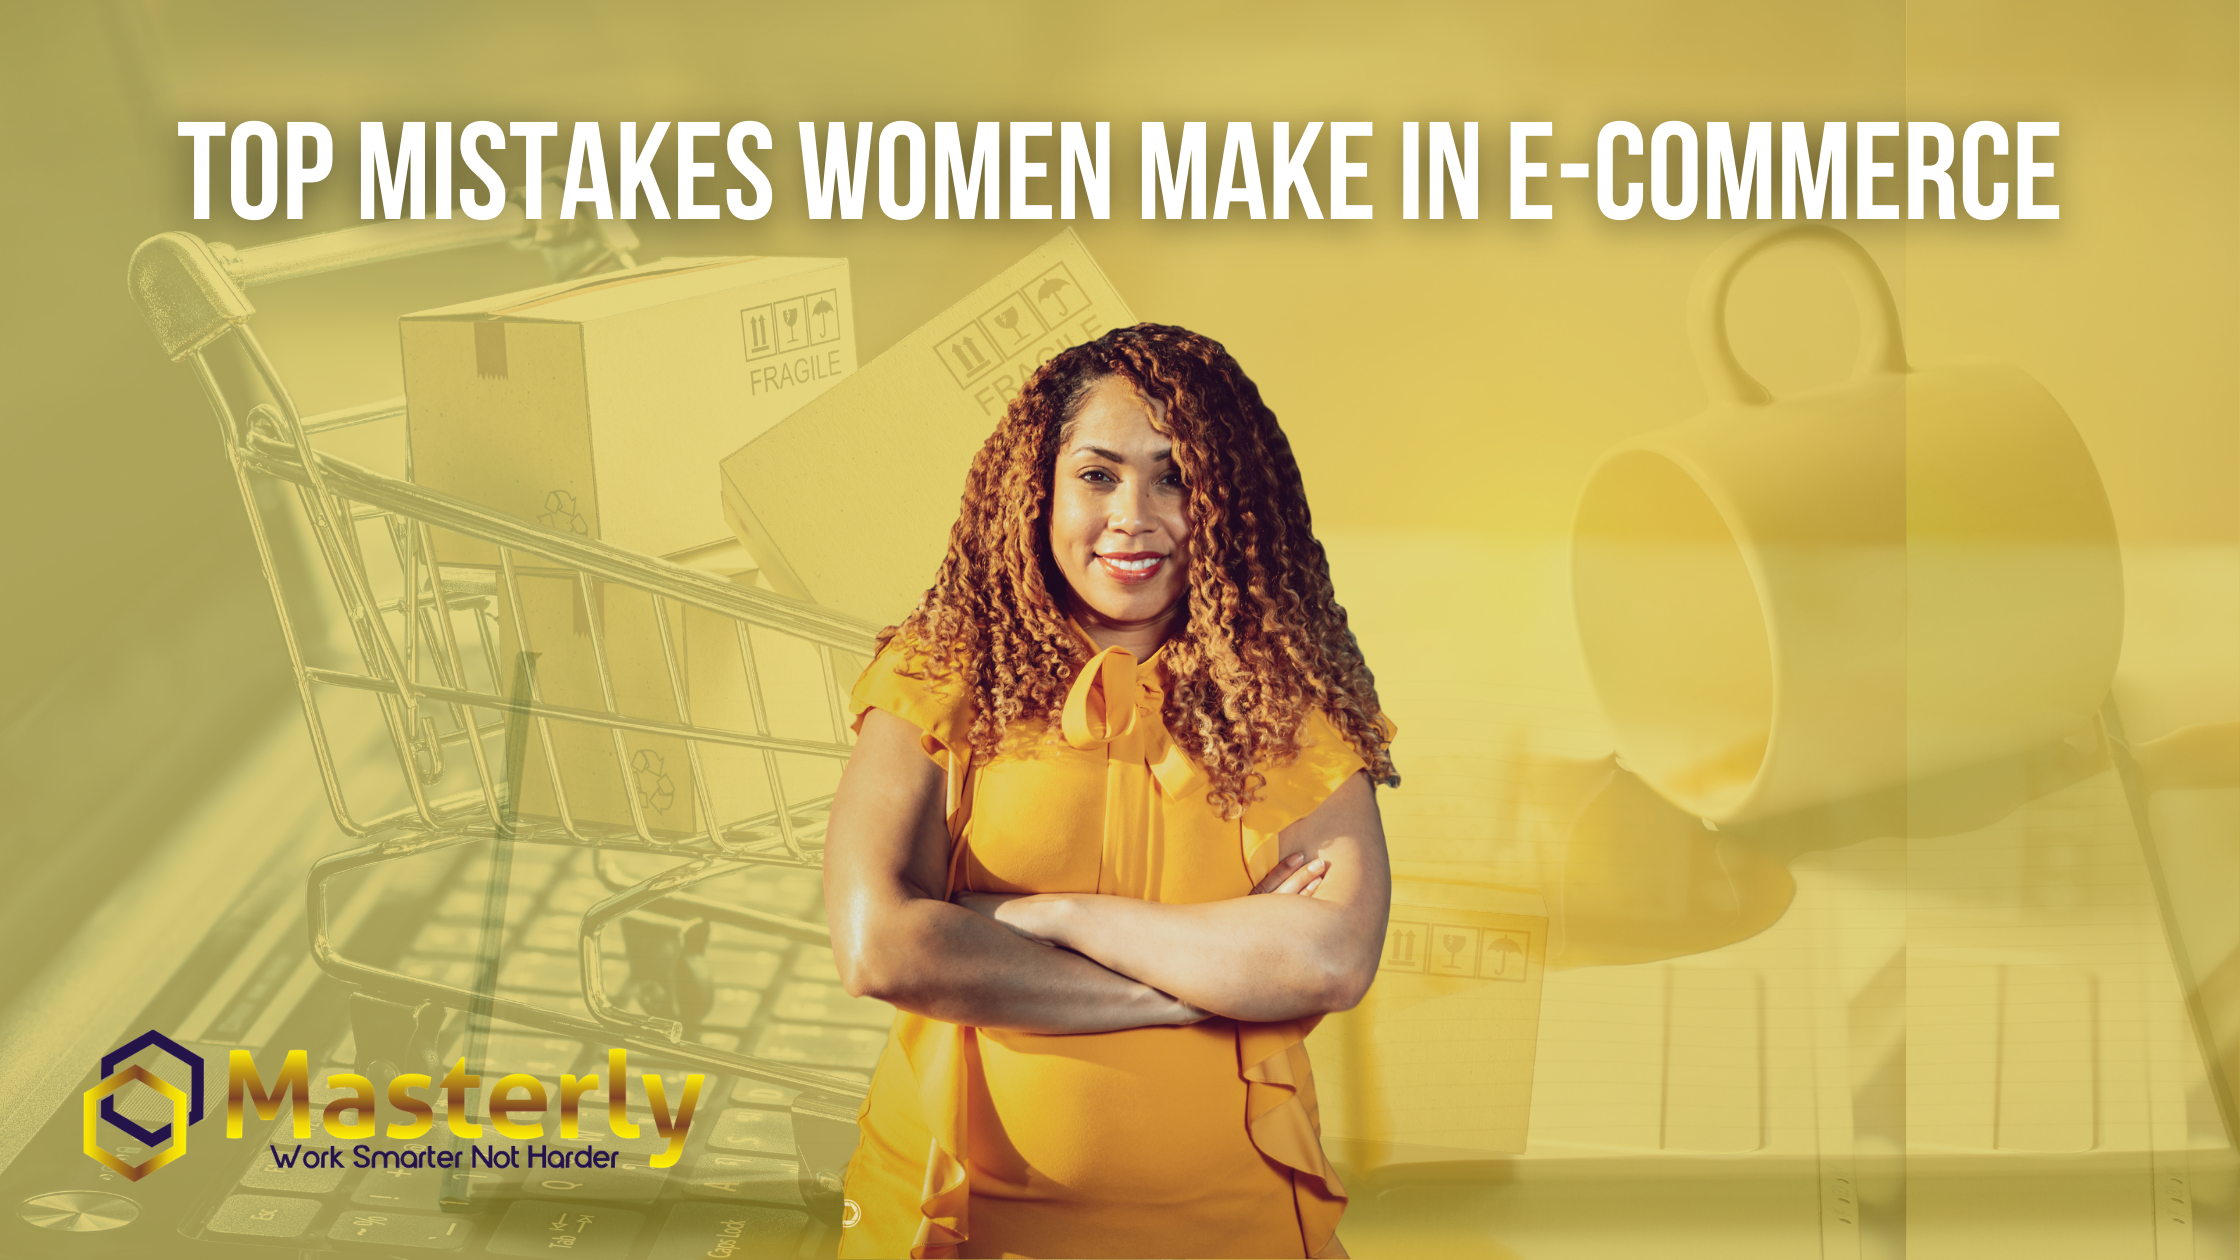 Top Mistakes Women Make in E-Commerce